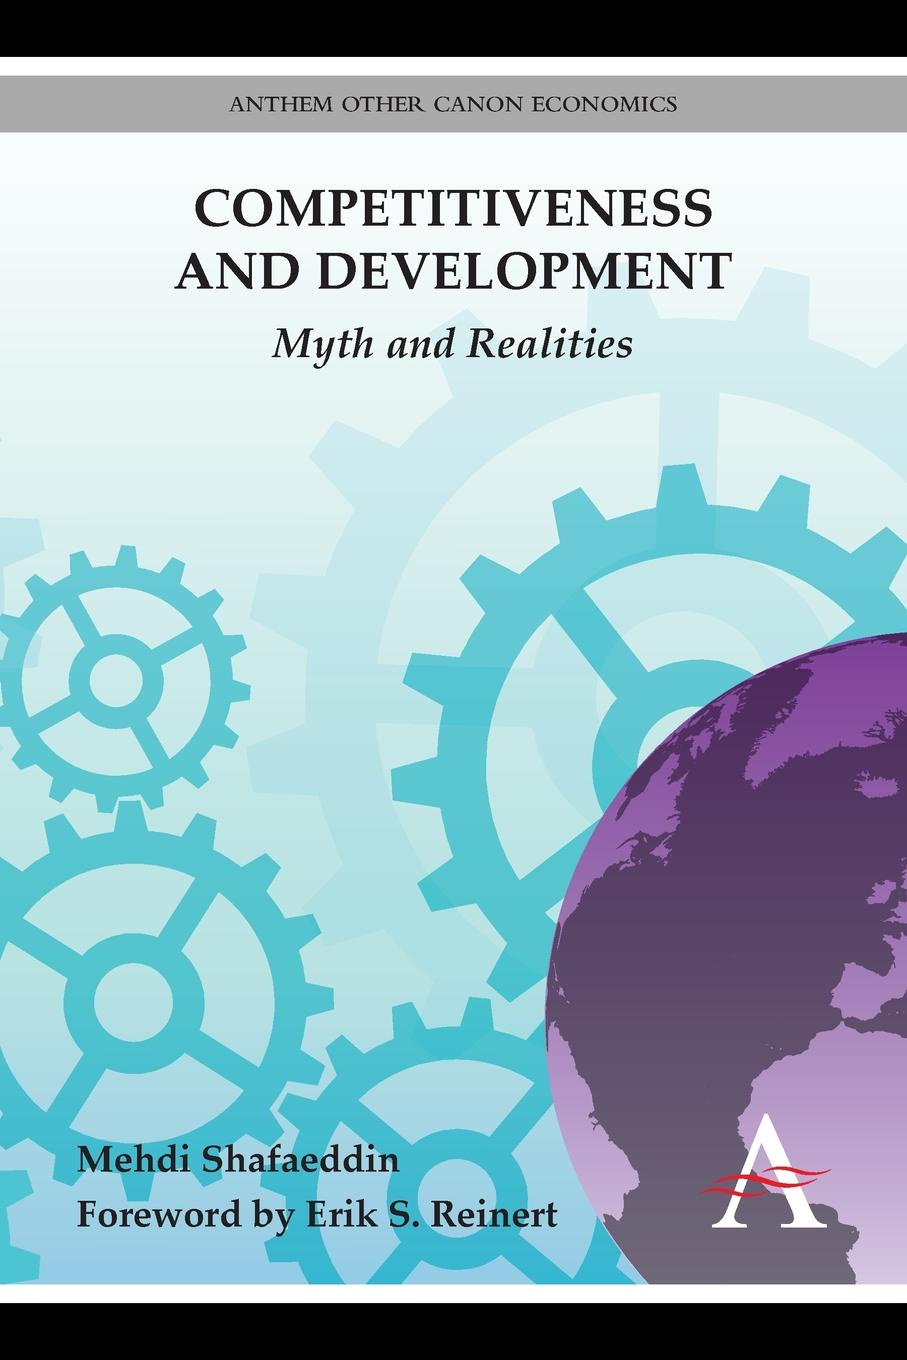 Mehdi Shafaeddin Competitiveness and Development. Myth and Realities dmitri makarov islam and development at micro level community activities of the islamic movement in israel